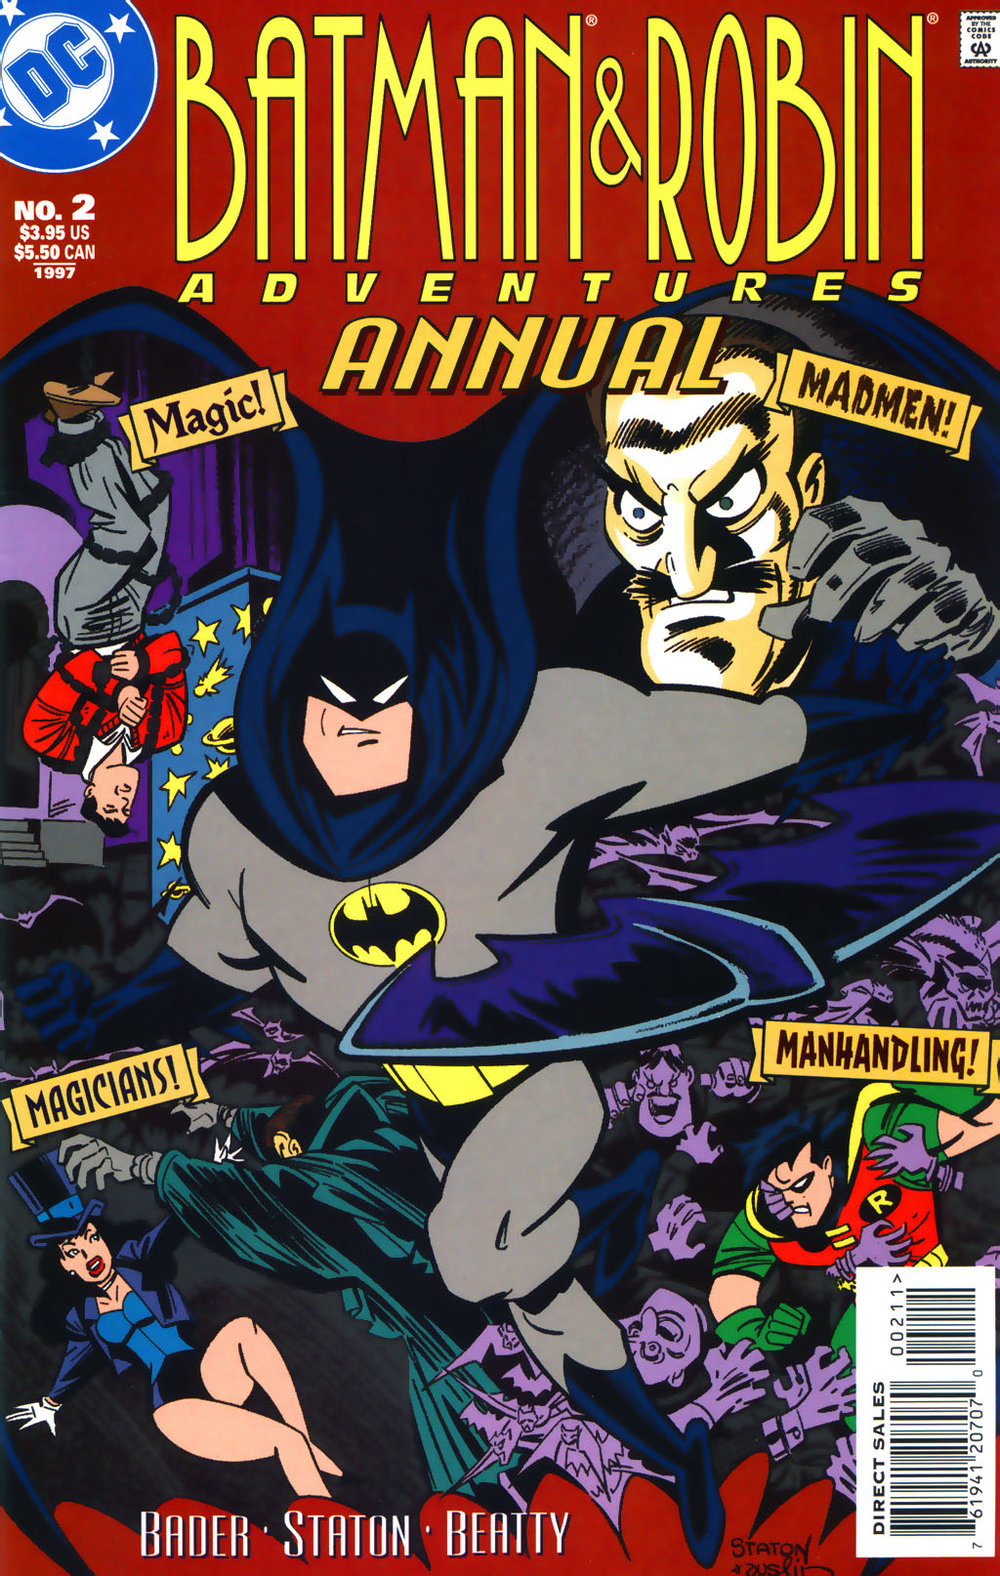 Batman & Robin Adventures Annual (1996) #2, cover penciled by Joe Staton & inked by Terry Austin.